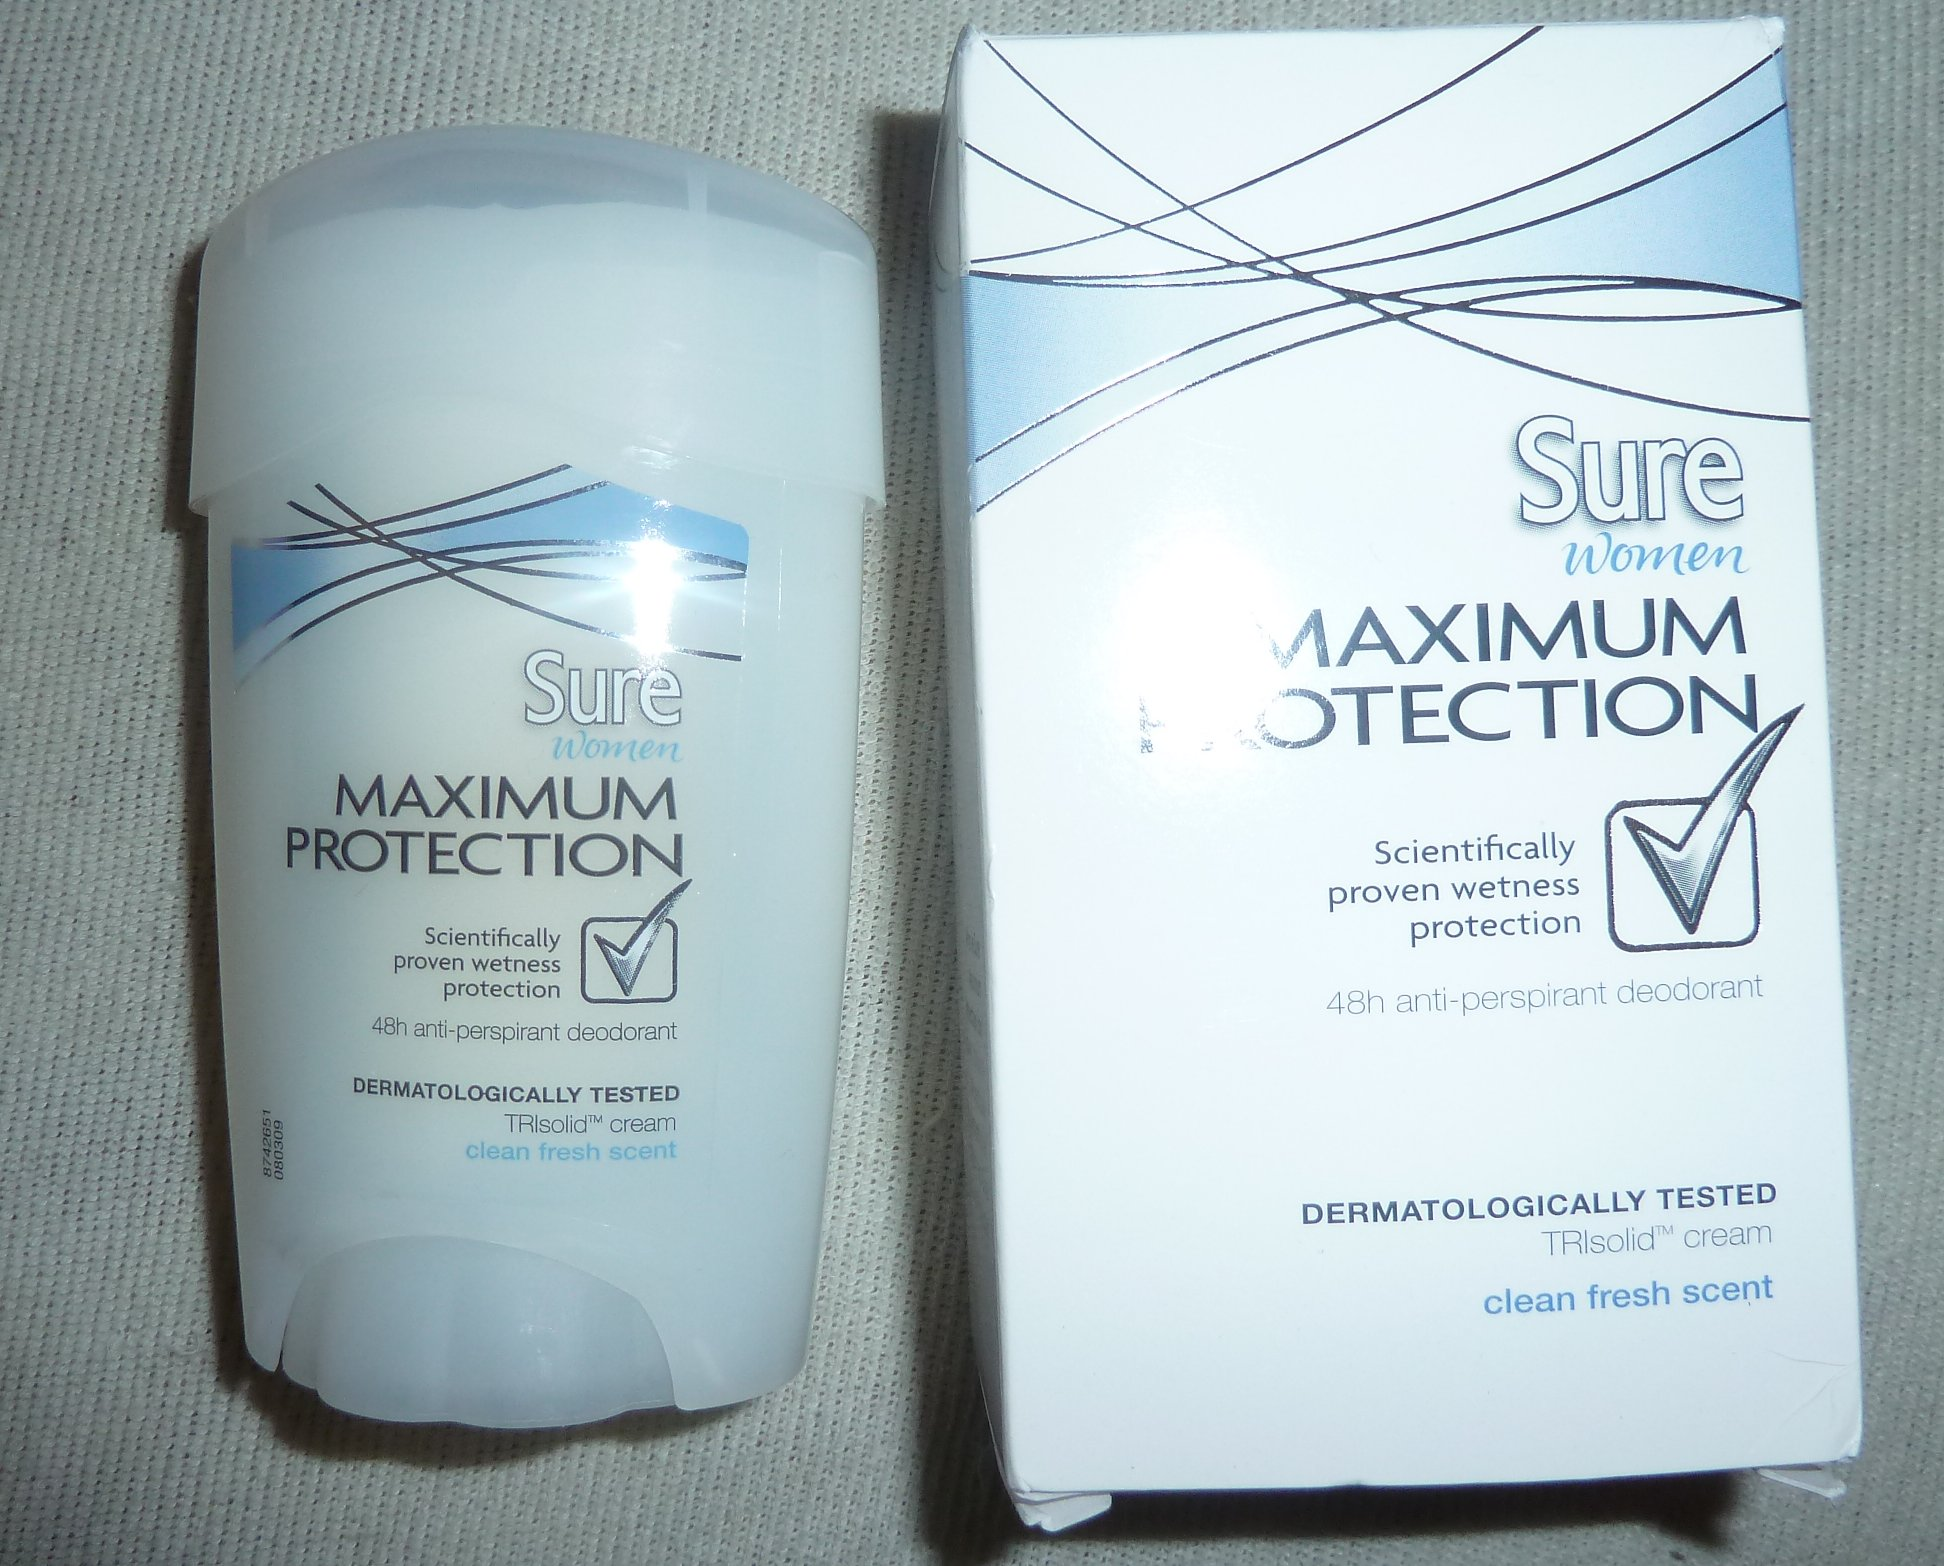 Sure Maximum Protection Deodorant